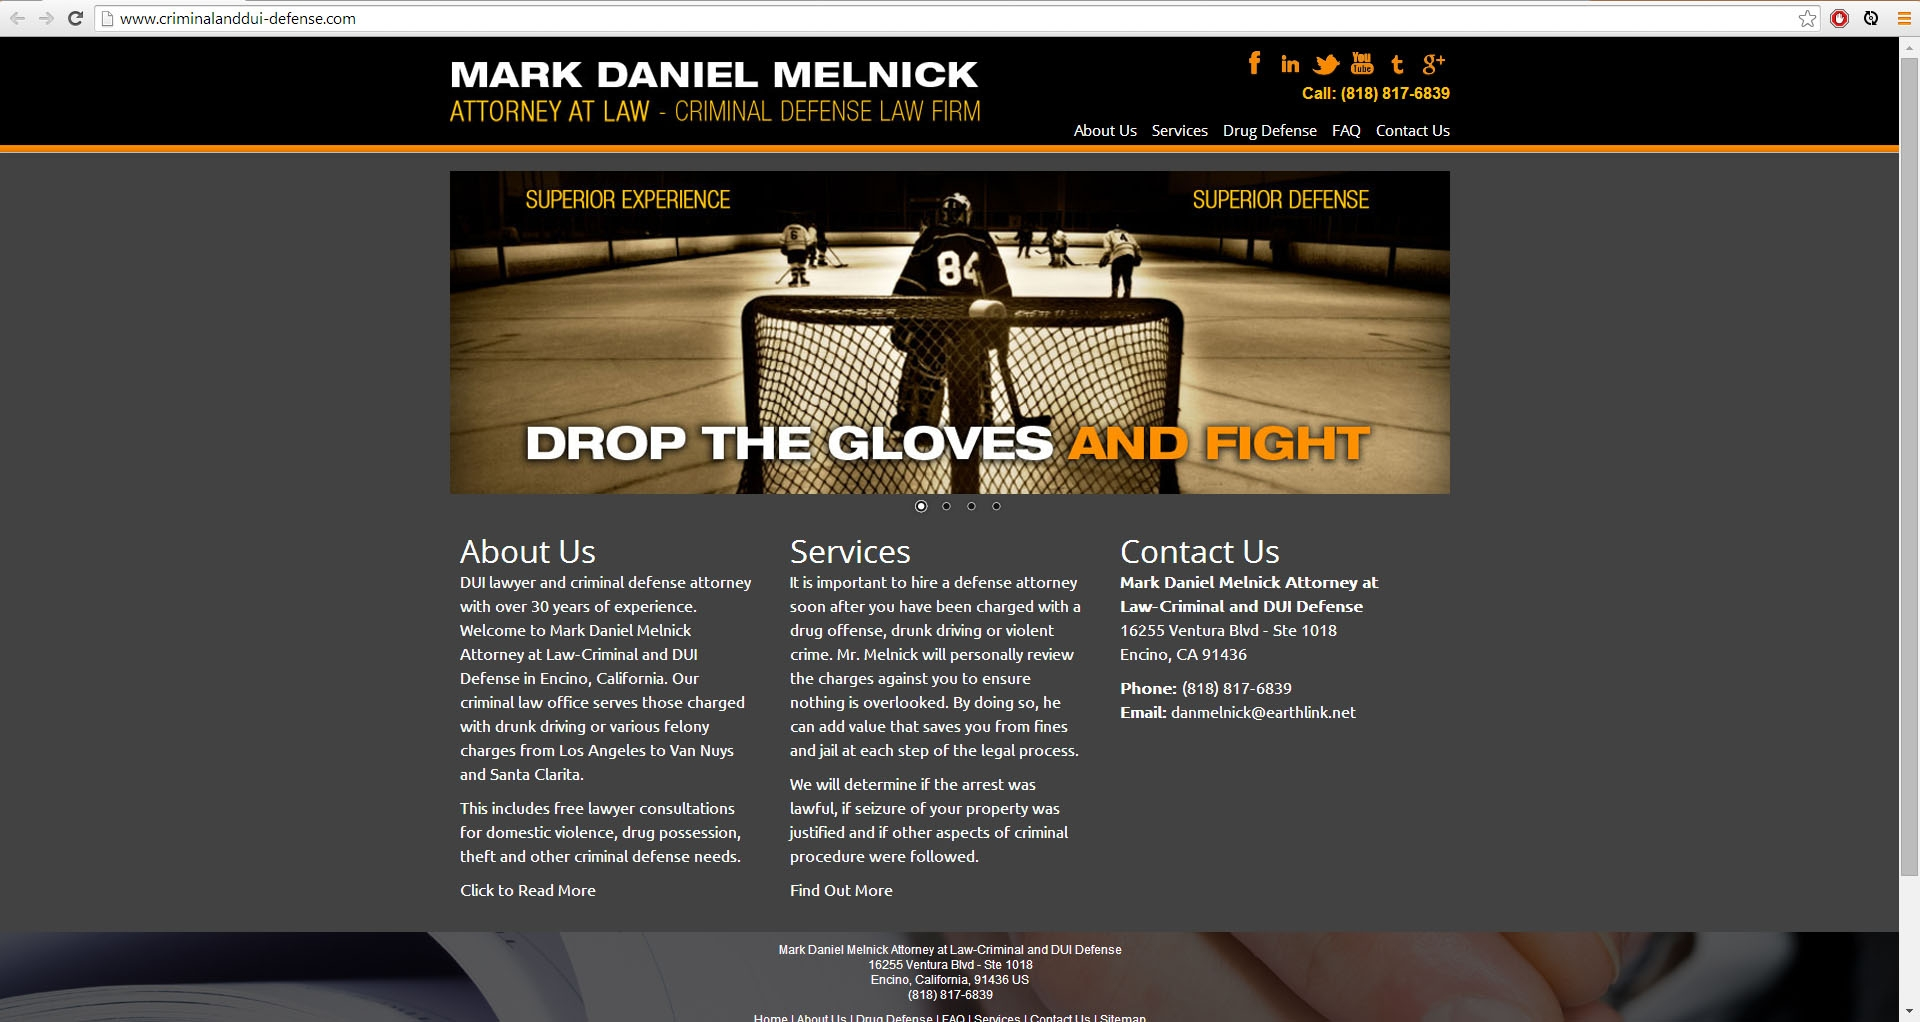 Mark Daniel Melnick Law